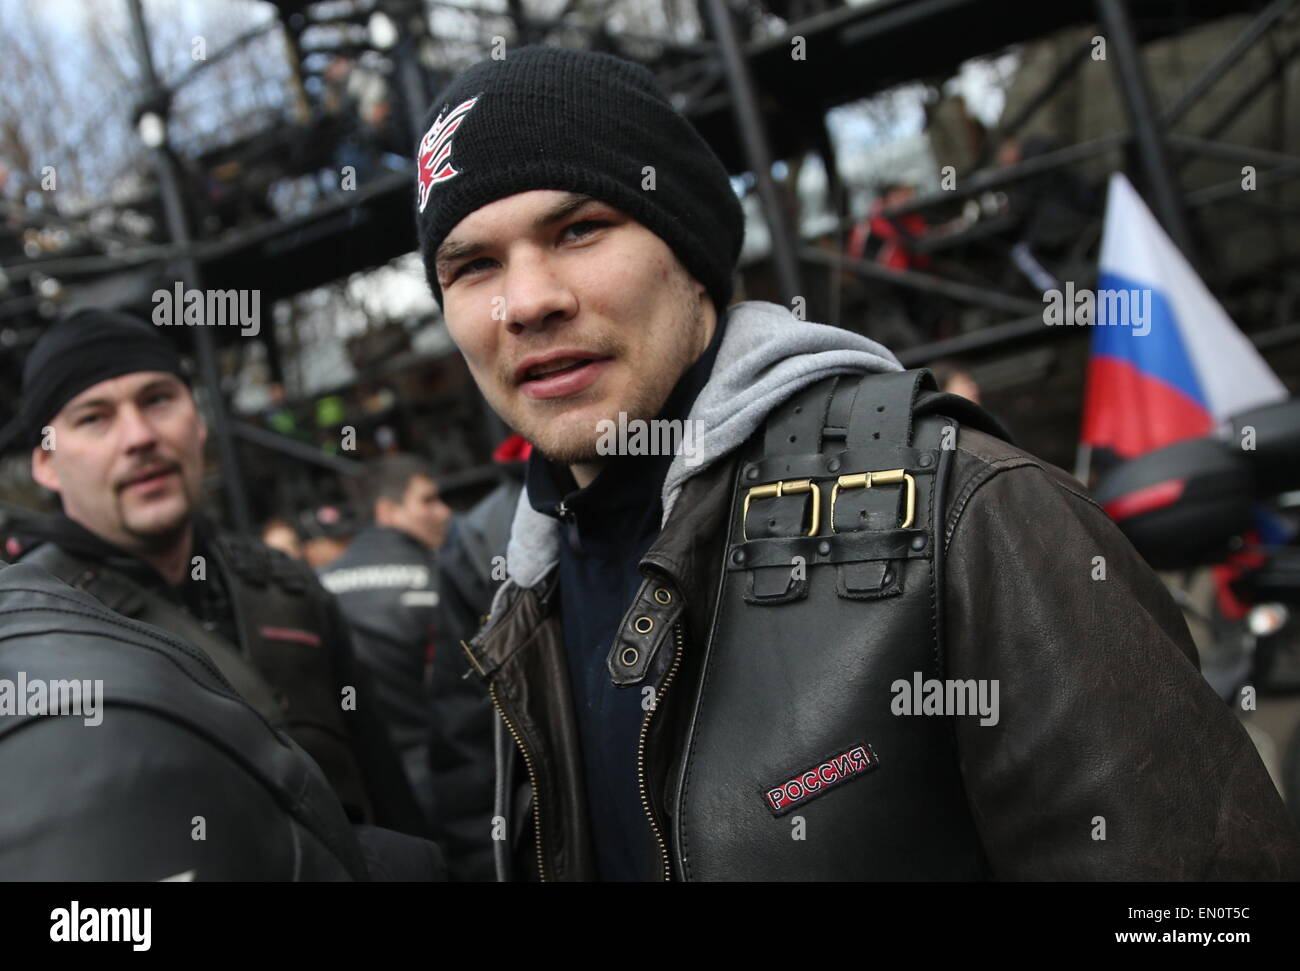 Moscow, Russia. 25th Apr, 2015. Russian boxer Dmitry Chudinov seen ahead of the Moscow-Berlin motocross dedicated Stock Photo